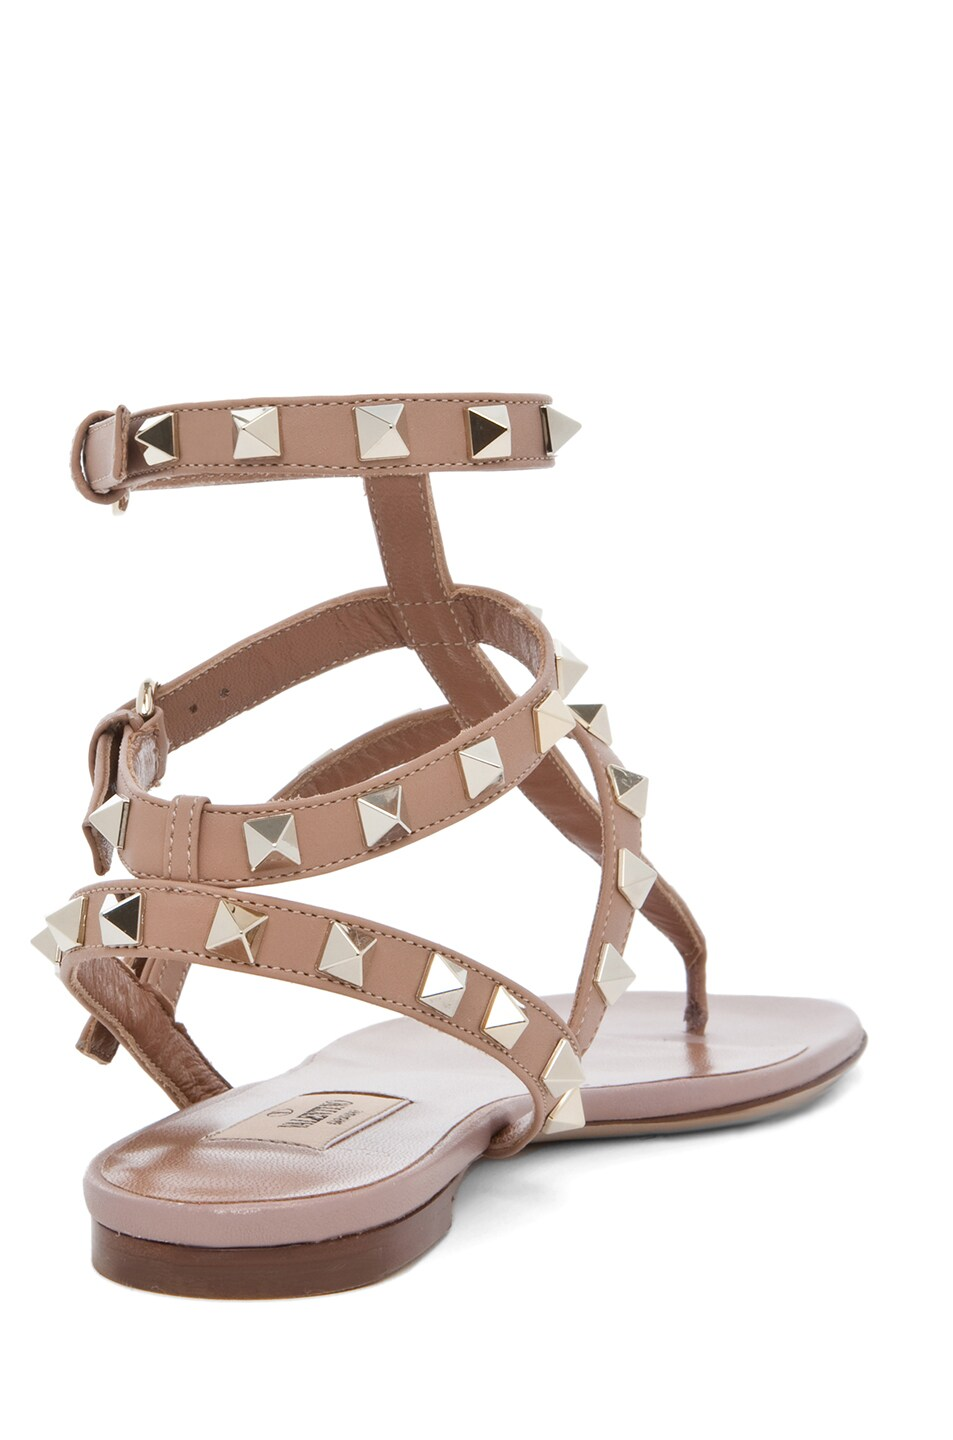 Image 3 of Valentino Rockstud Leather Gladiator Sandal T.05 in Soft Hazelnut & Nude & Platinum